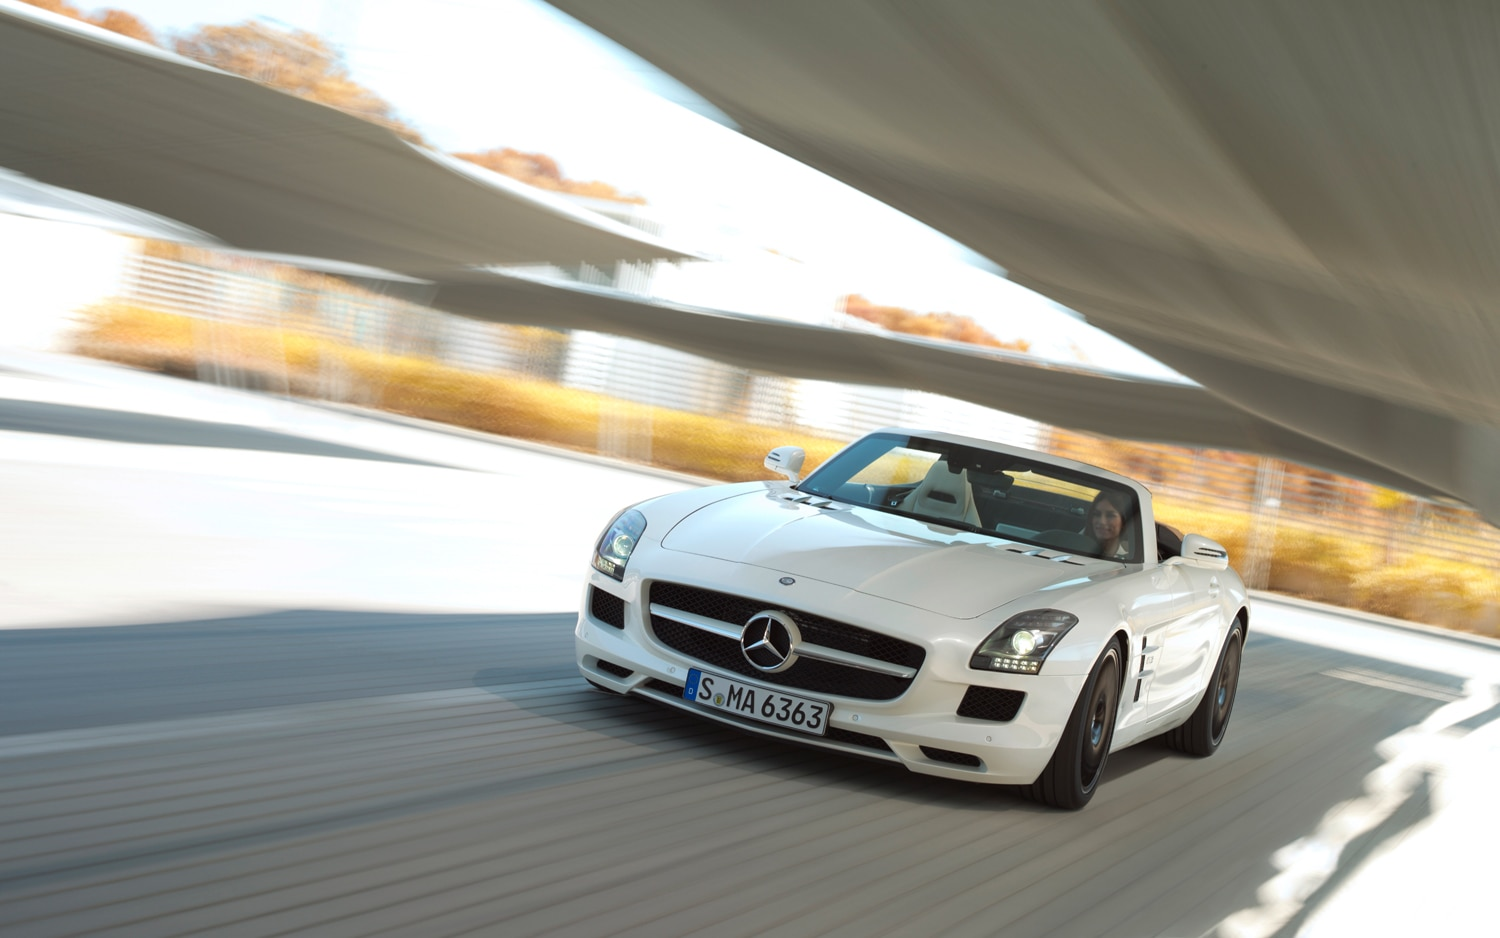 First Drive: 2012 Mercedes-Benz SLS AMG Roadster - Automobile Magazine